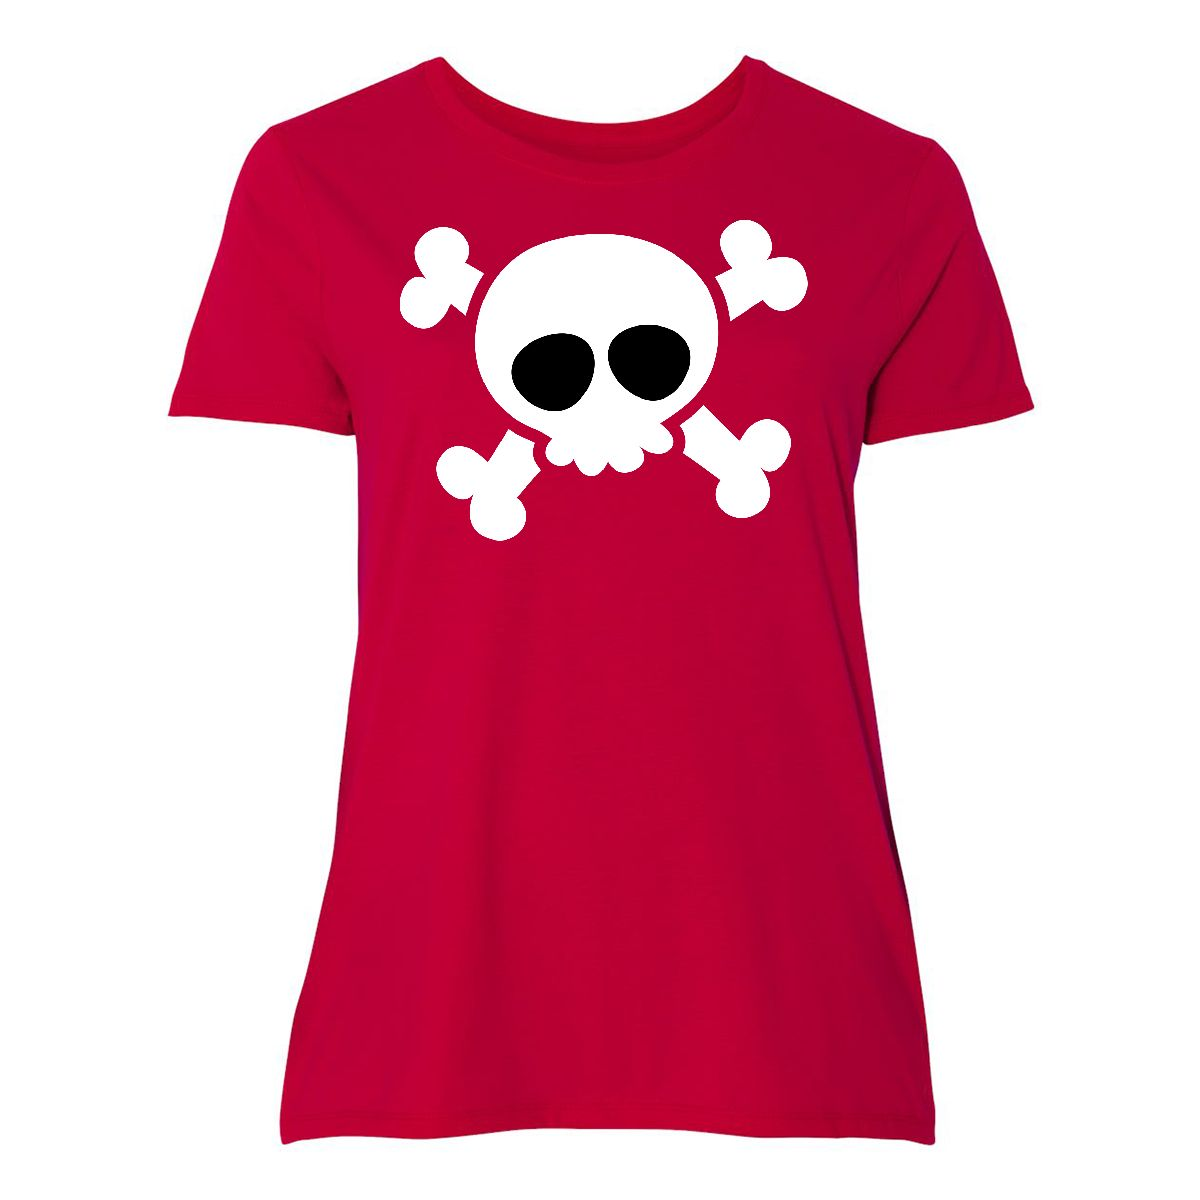 3e0565c58 Inktastic Skull Design Women's Plus Size T-Shirt Halloween Holiday ...